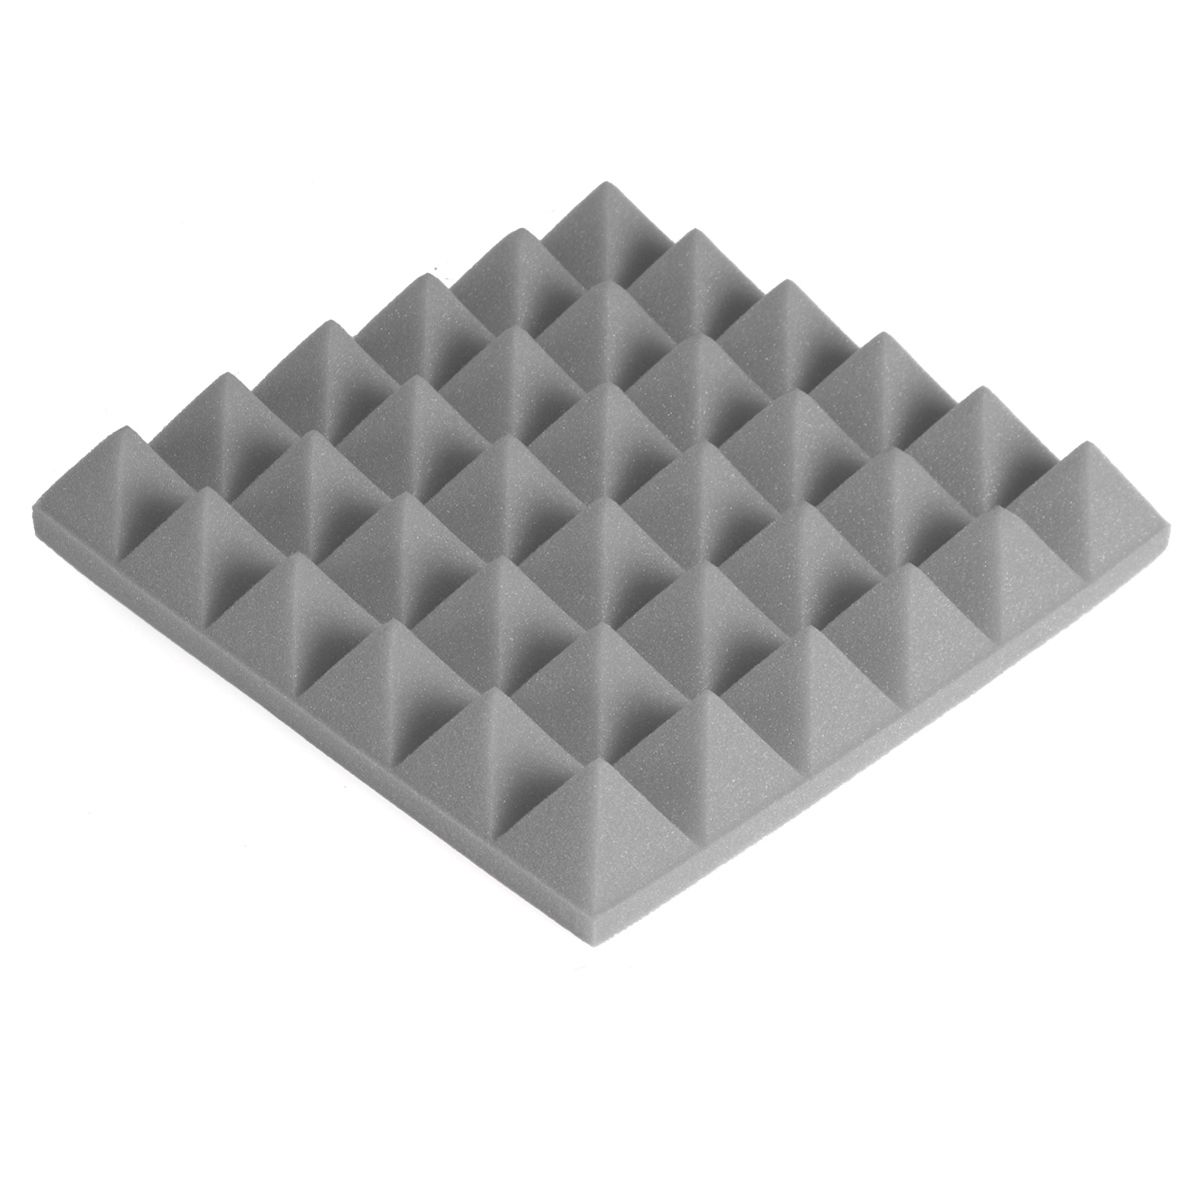 24Pcs 300x300x50mm Soundproofing Foam Studio Acoustic Foam Soundproof Absorption Treatment Wall Panels